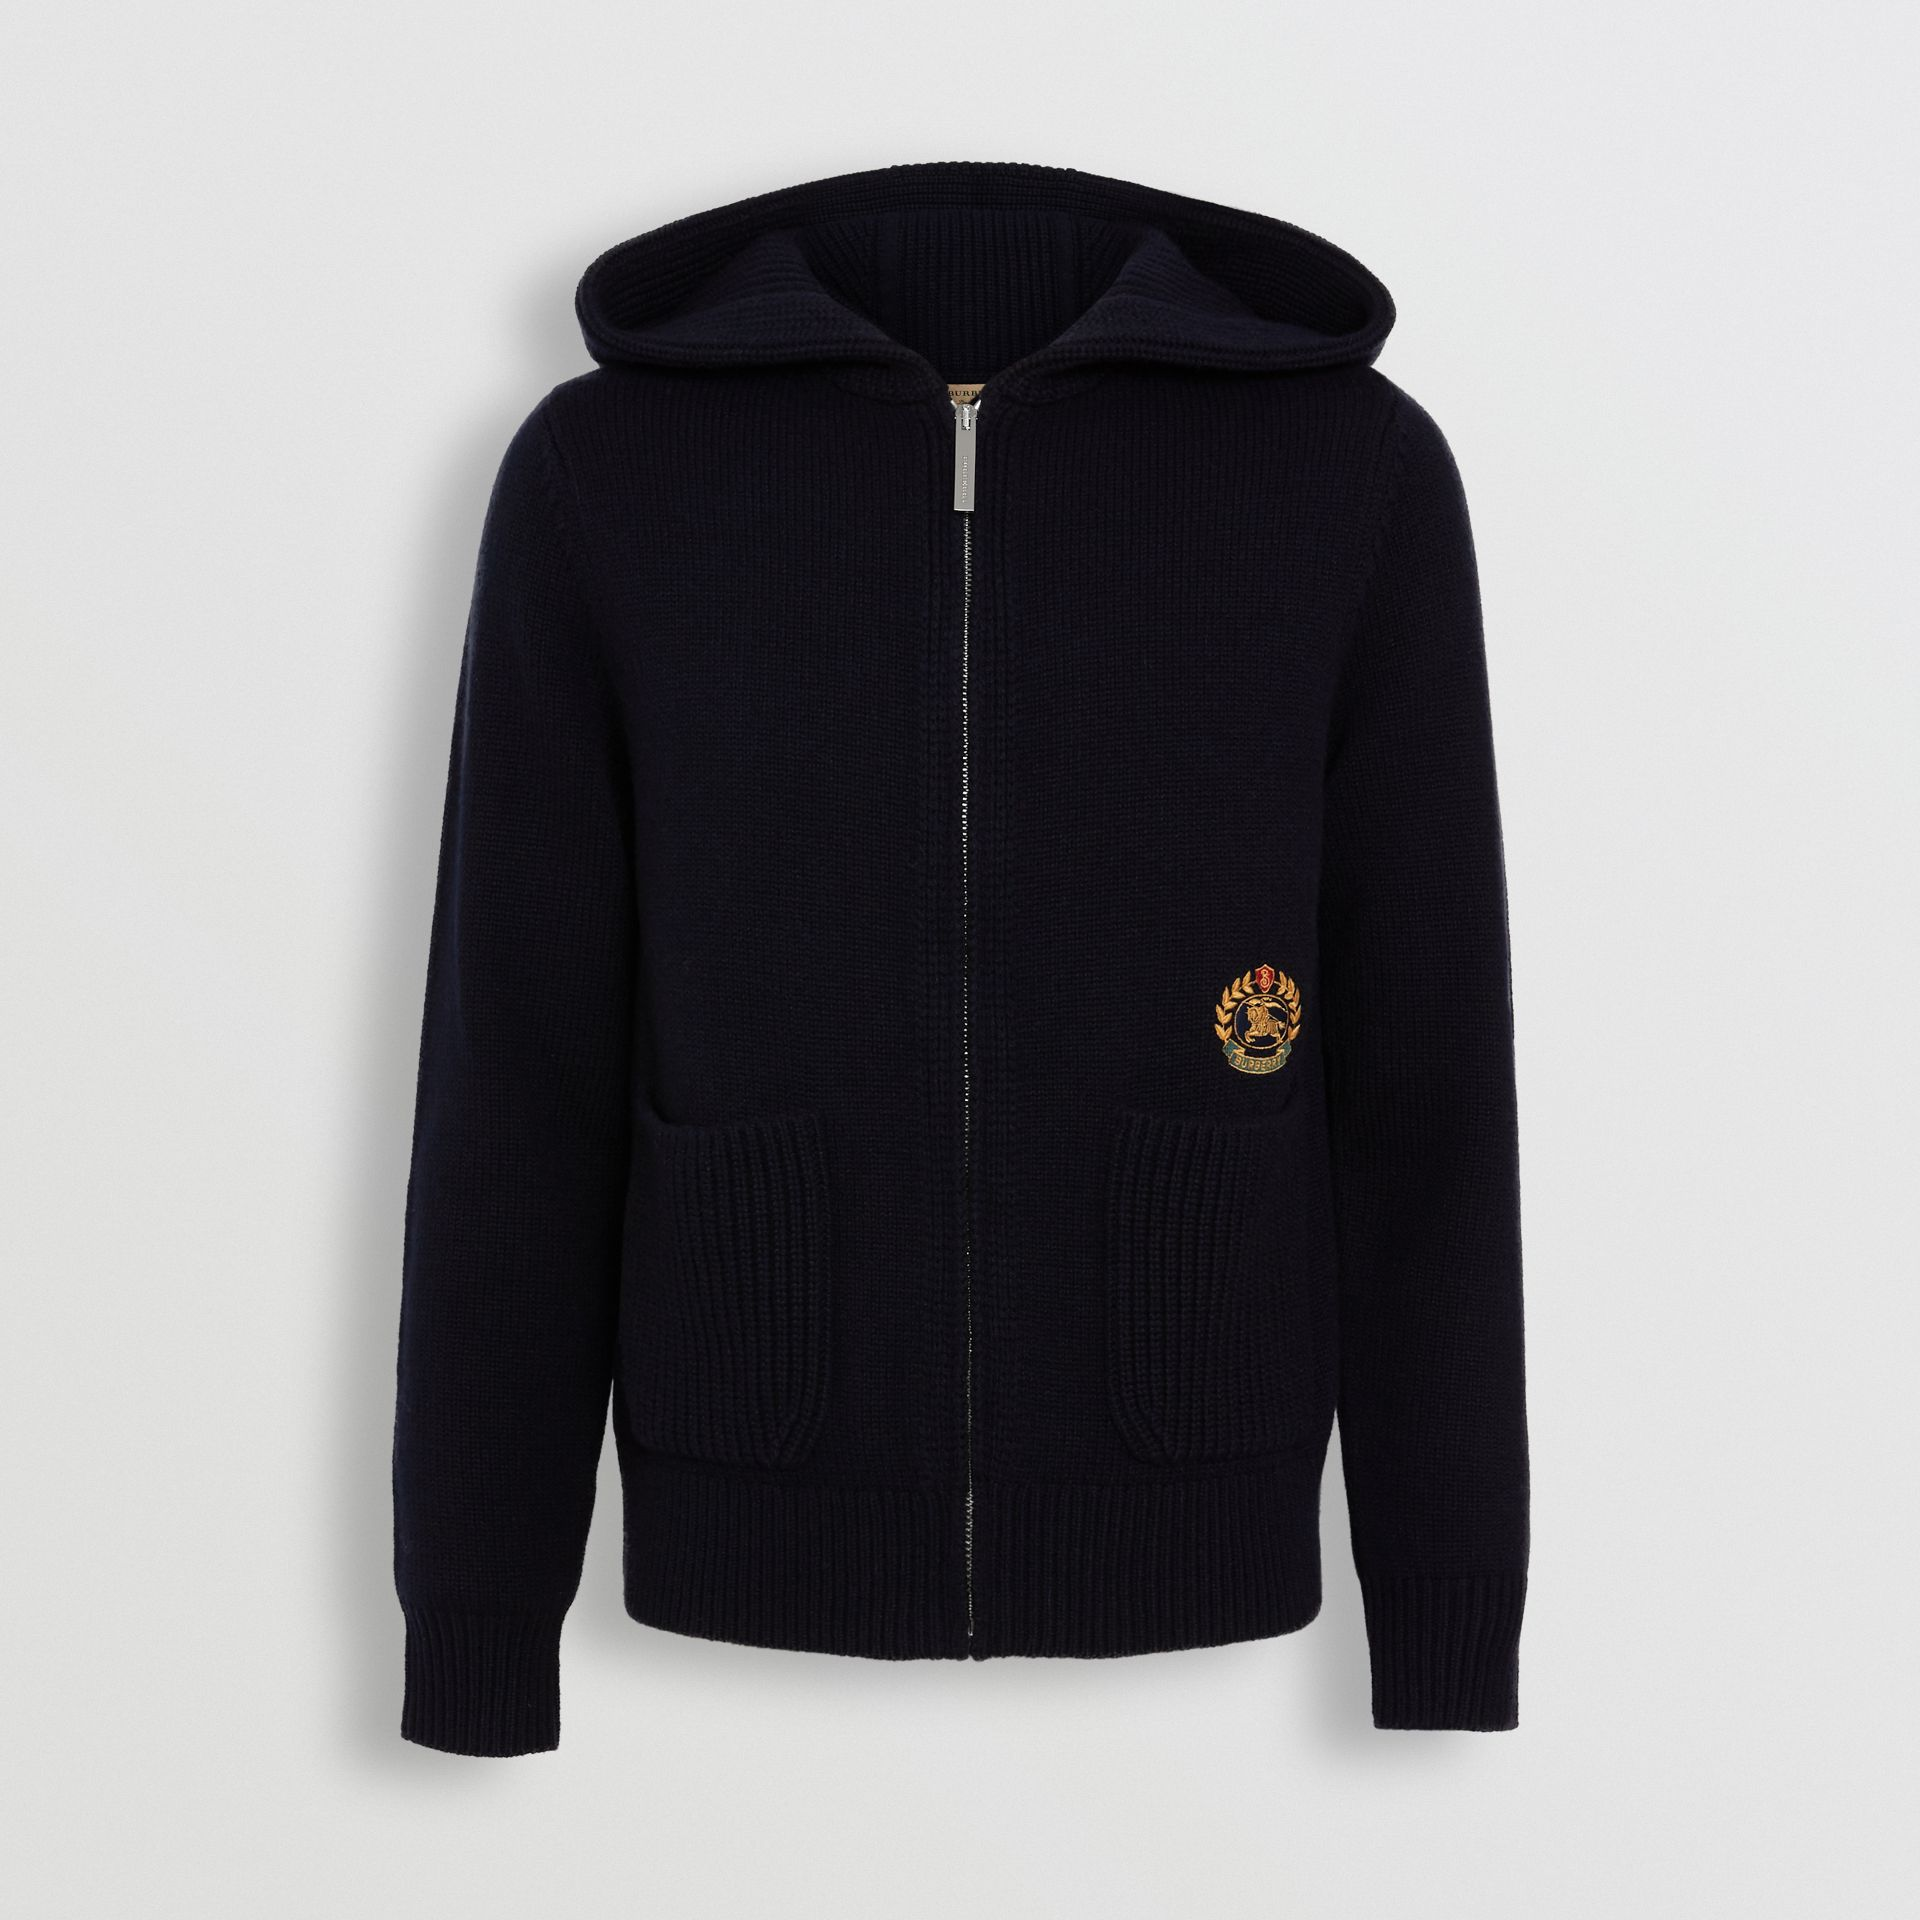 Embroidered Crest Cashmere Hooded Top in Navy - Women | Burberry United Kingdom - gallery image 3